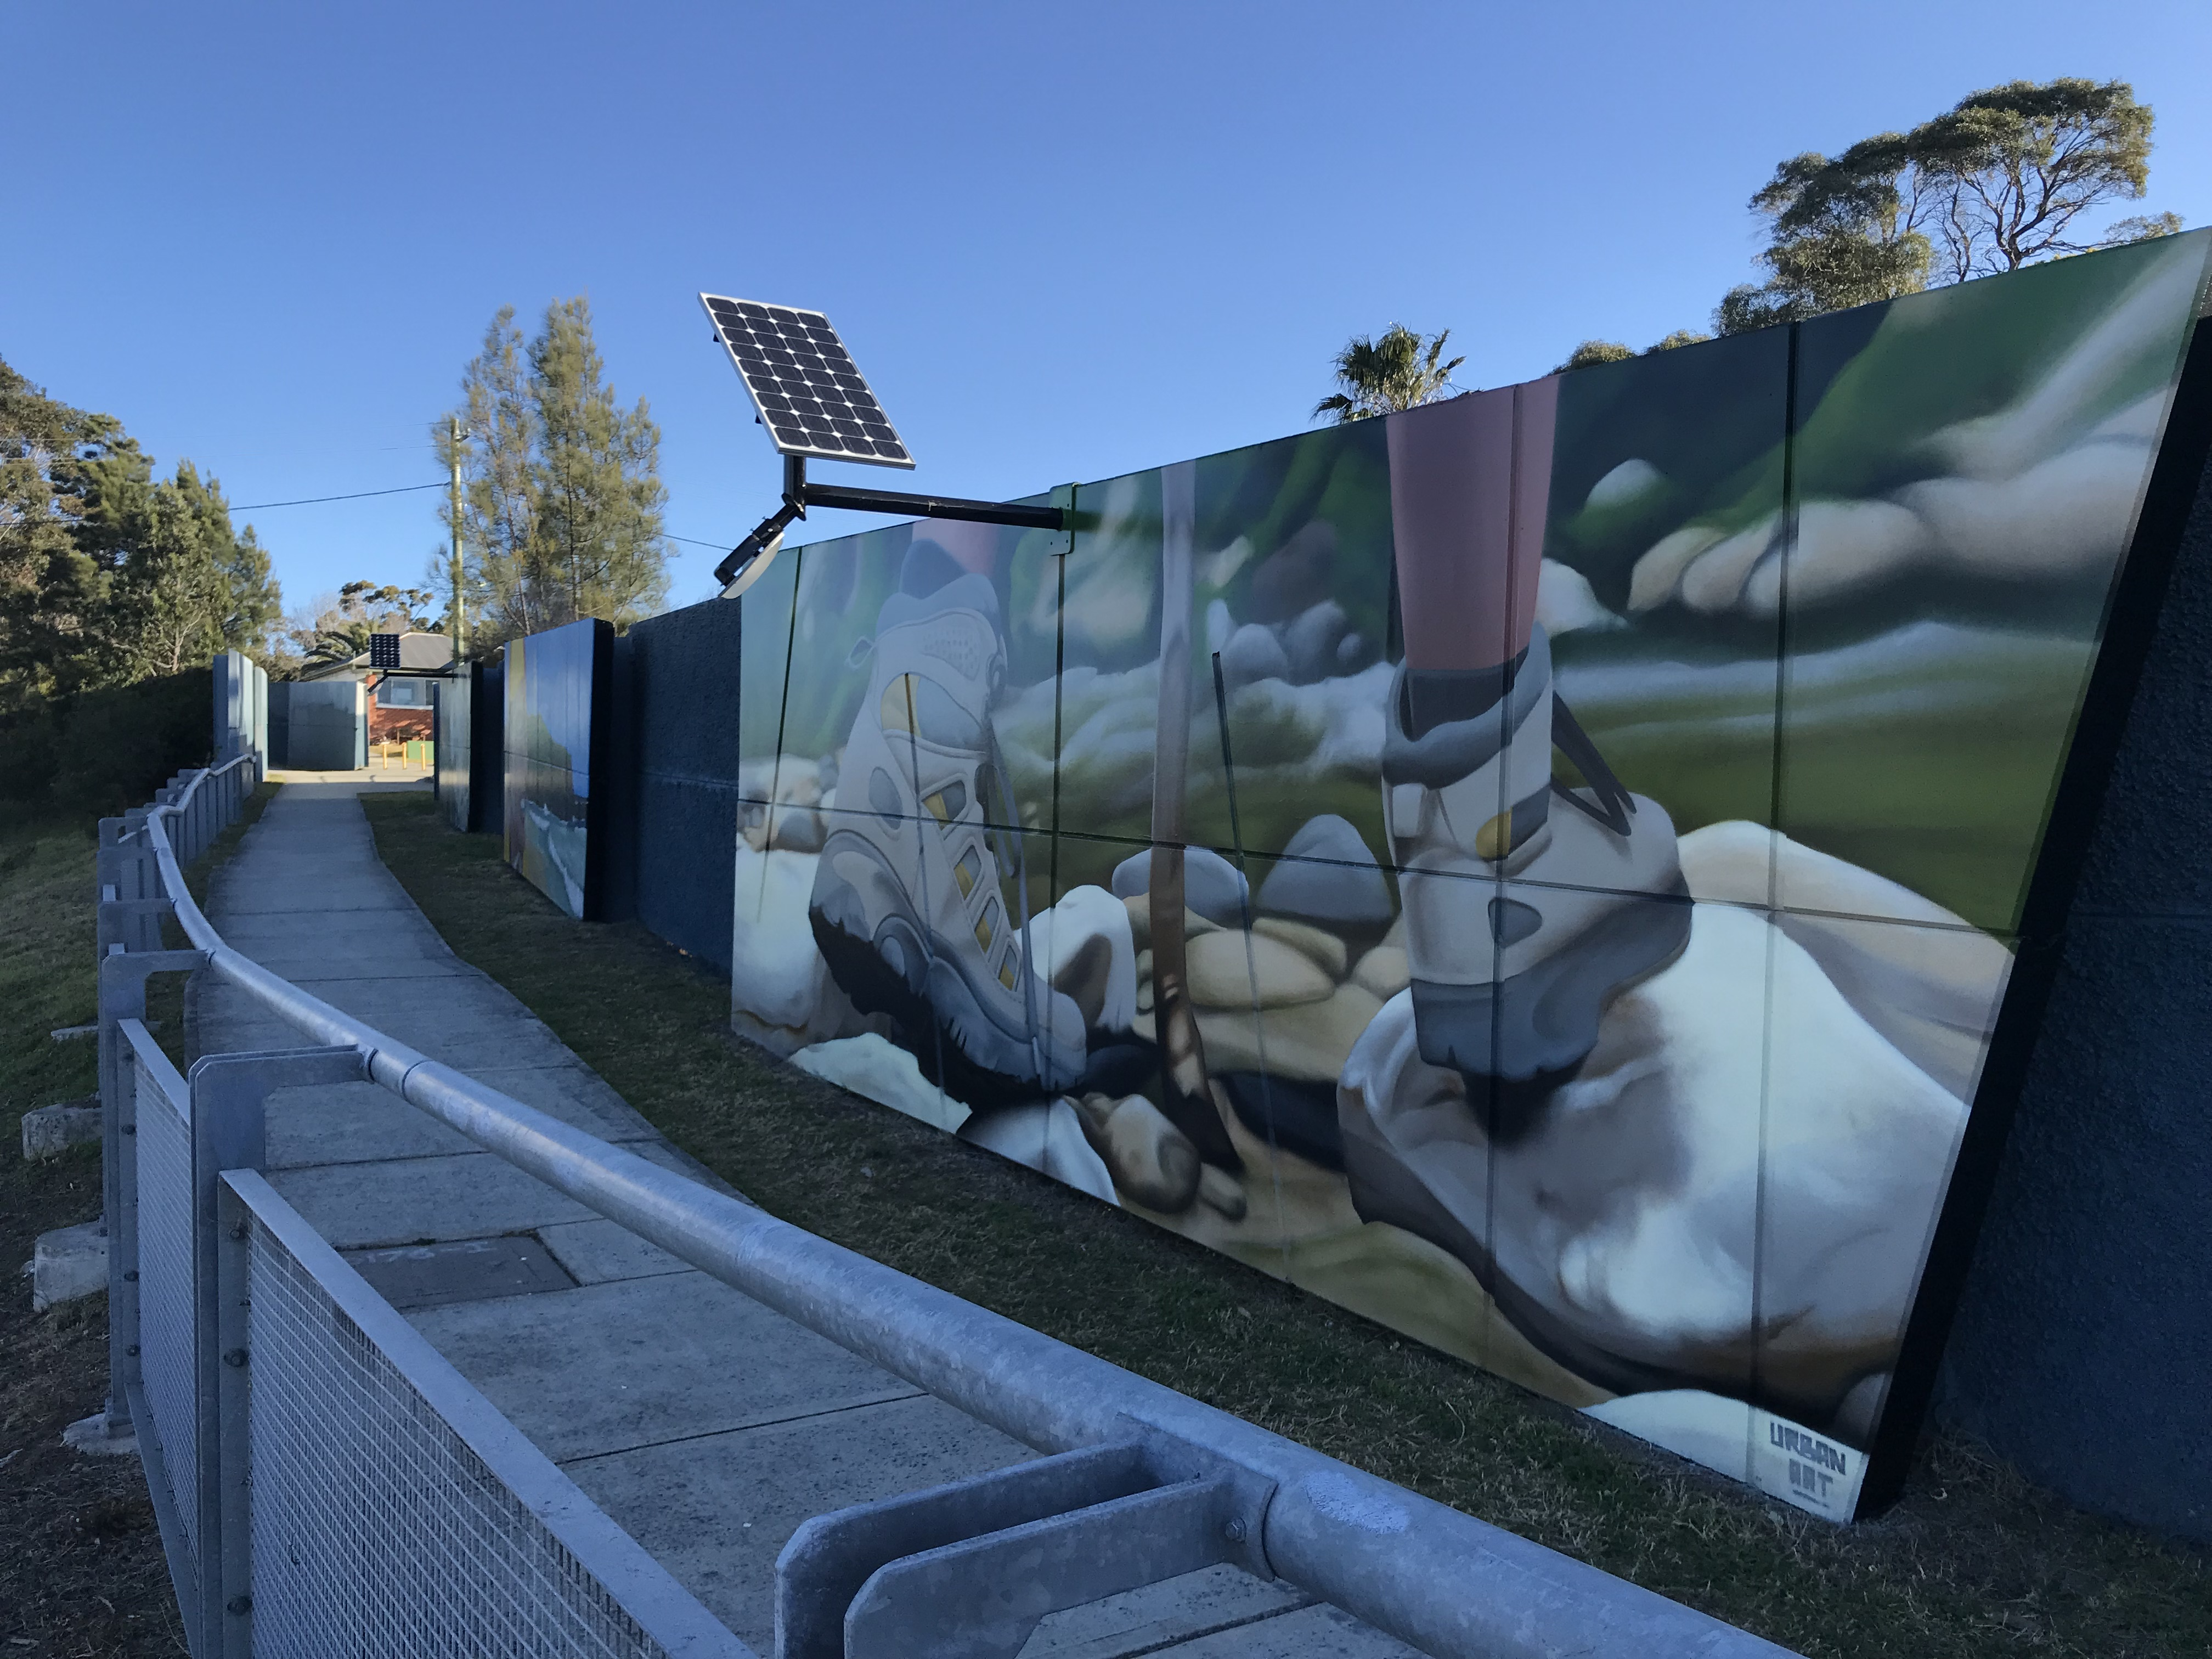 Bulli murals on highway sound walls